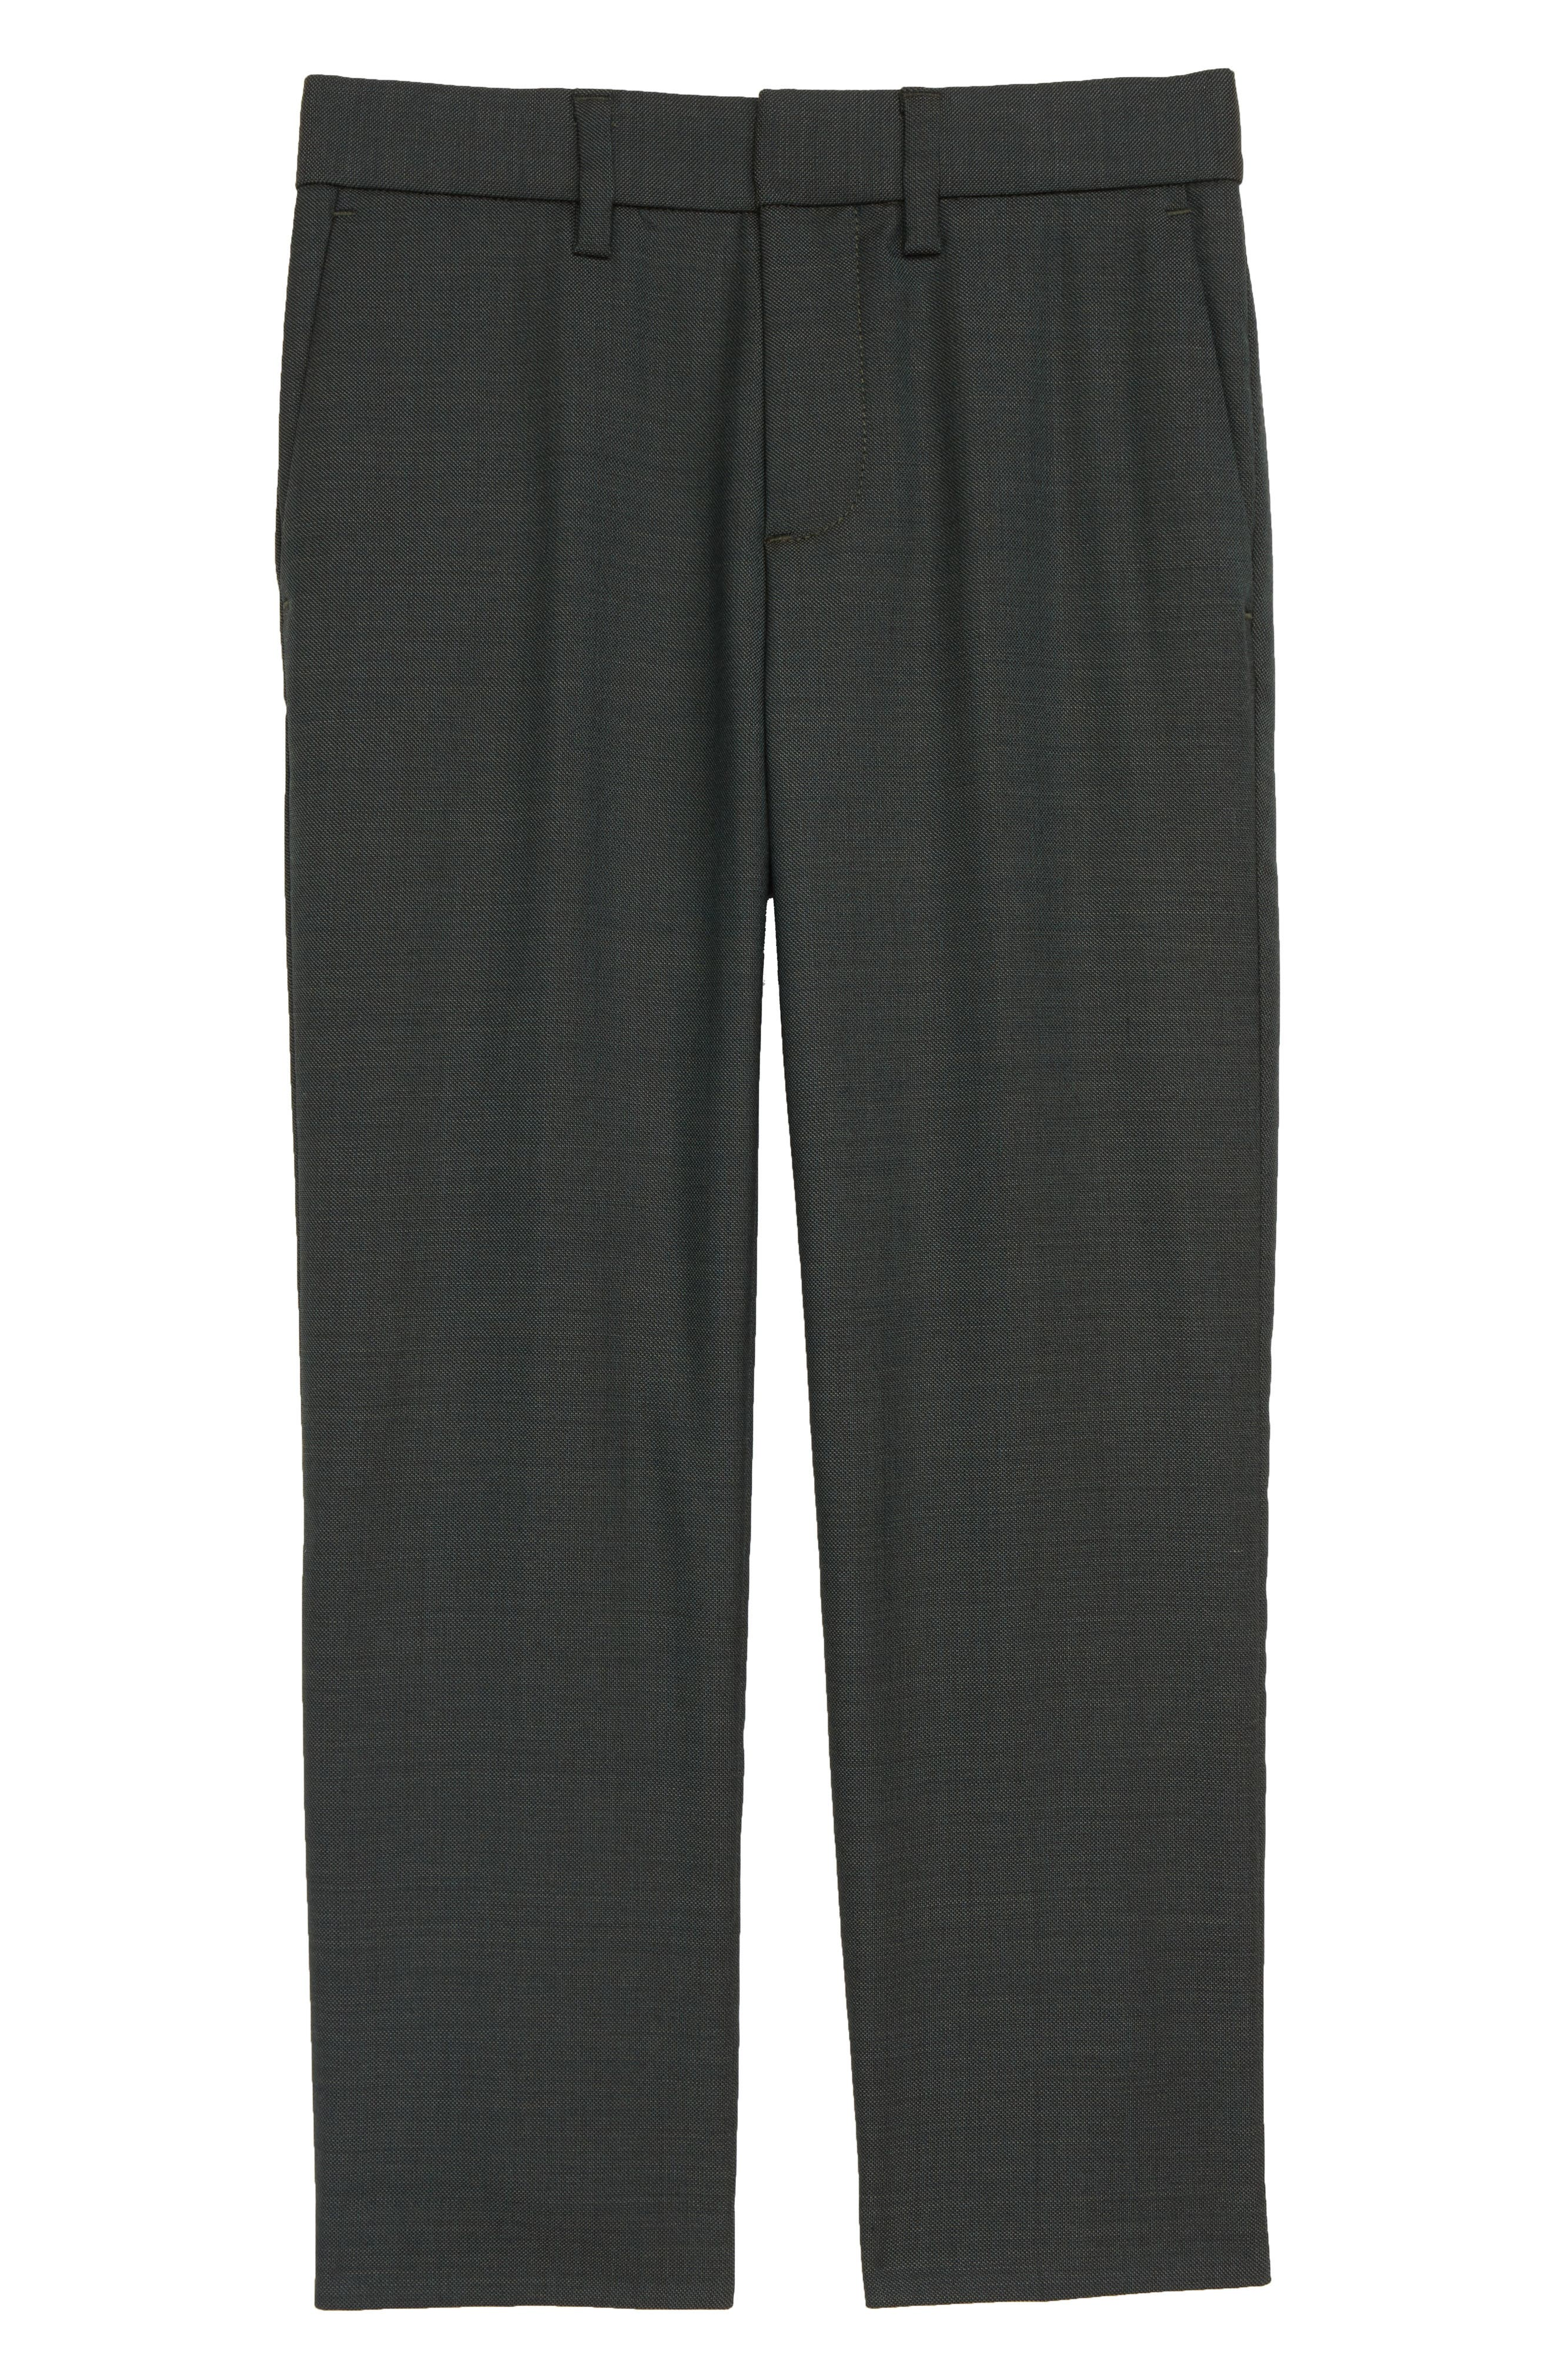 Ludlow Stretch Wool Suit Pants,                             Main thumbnail 1, color,                             DARK GREEN